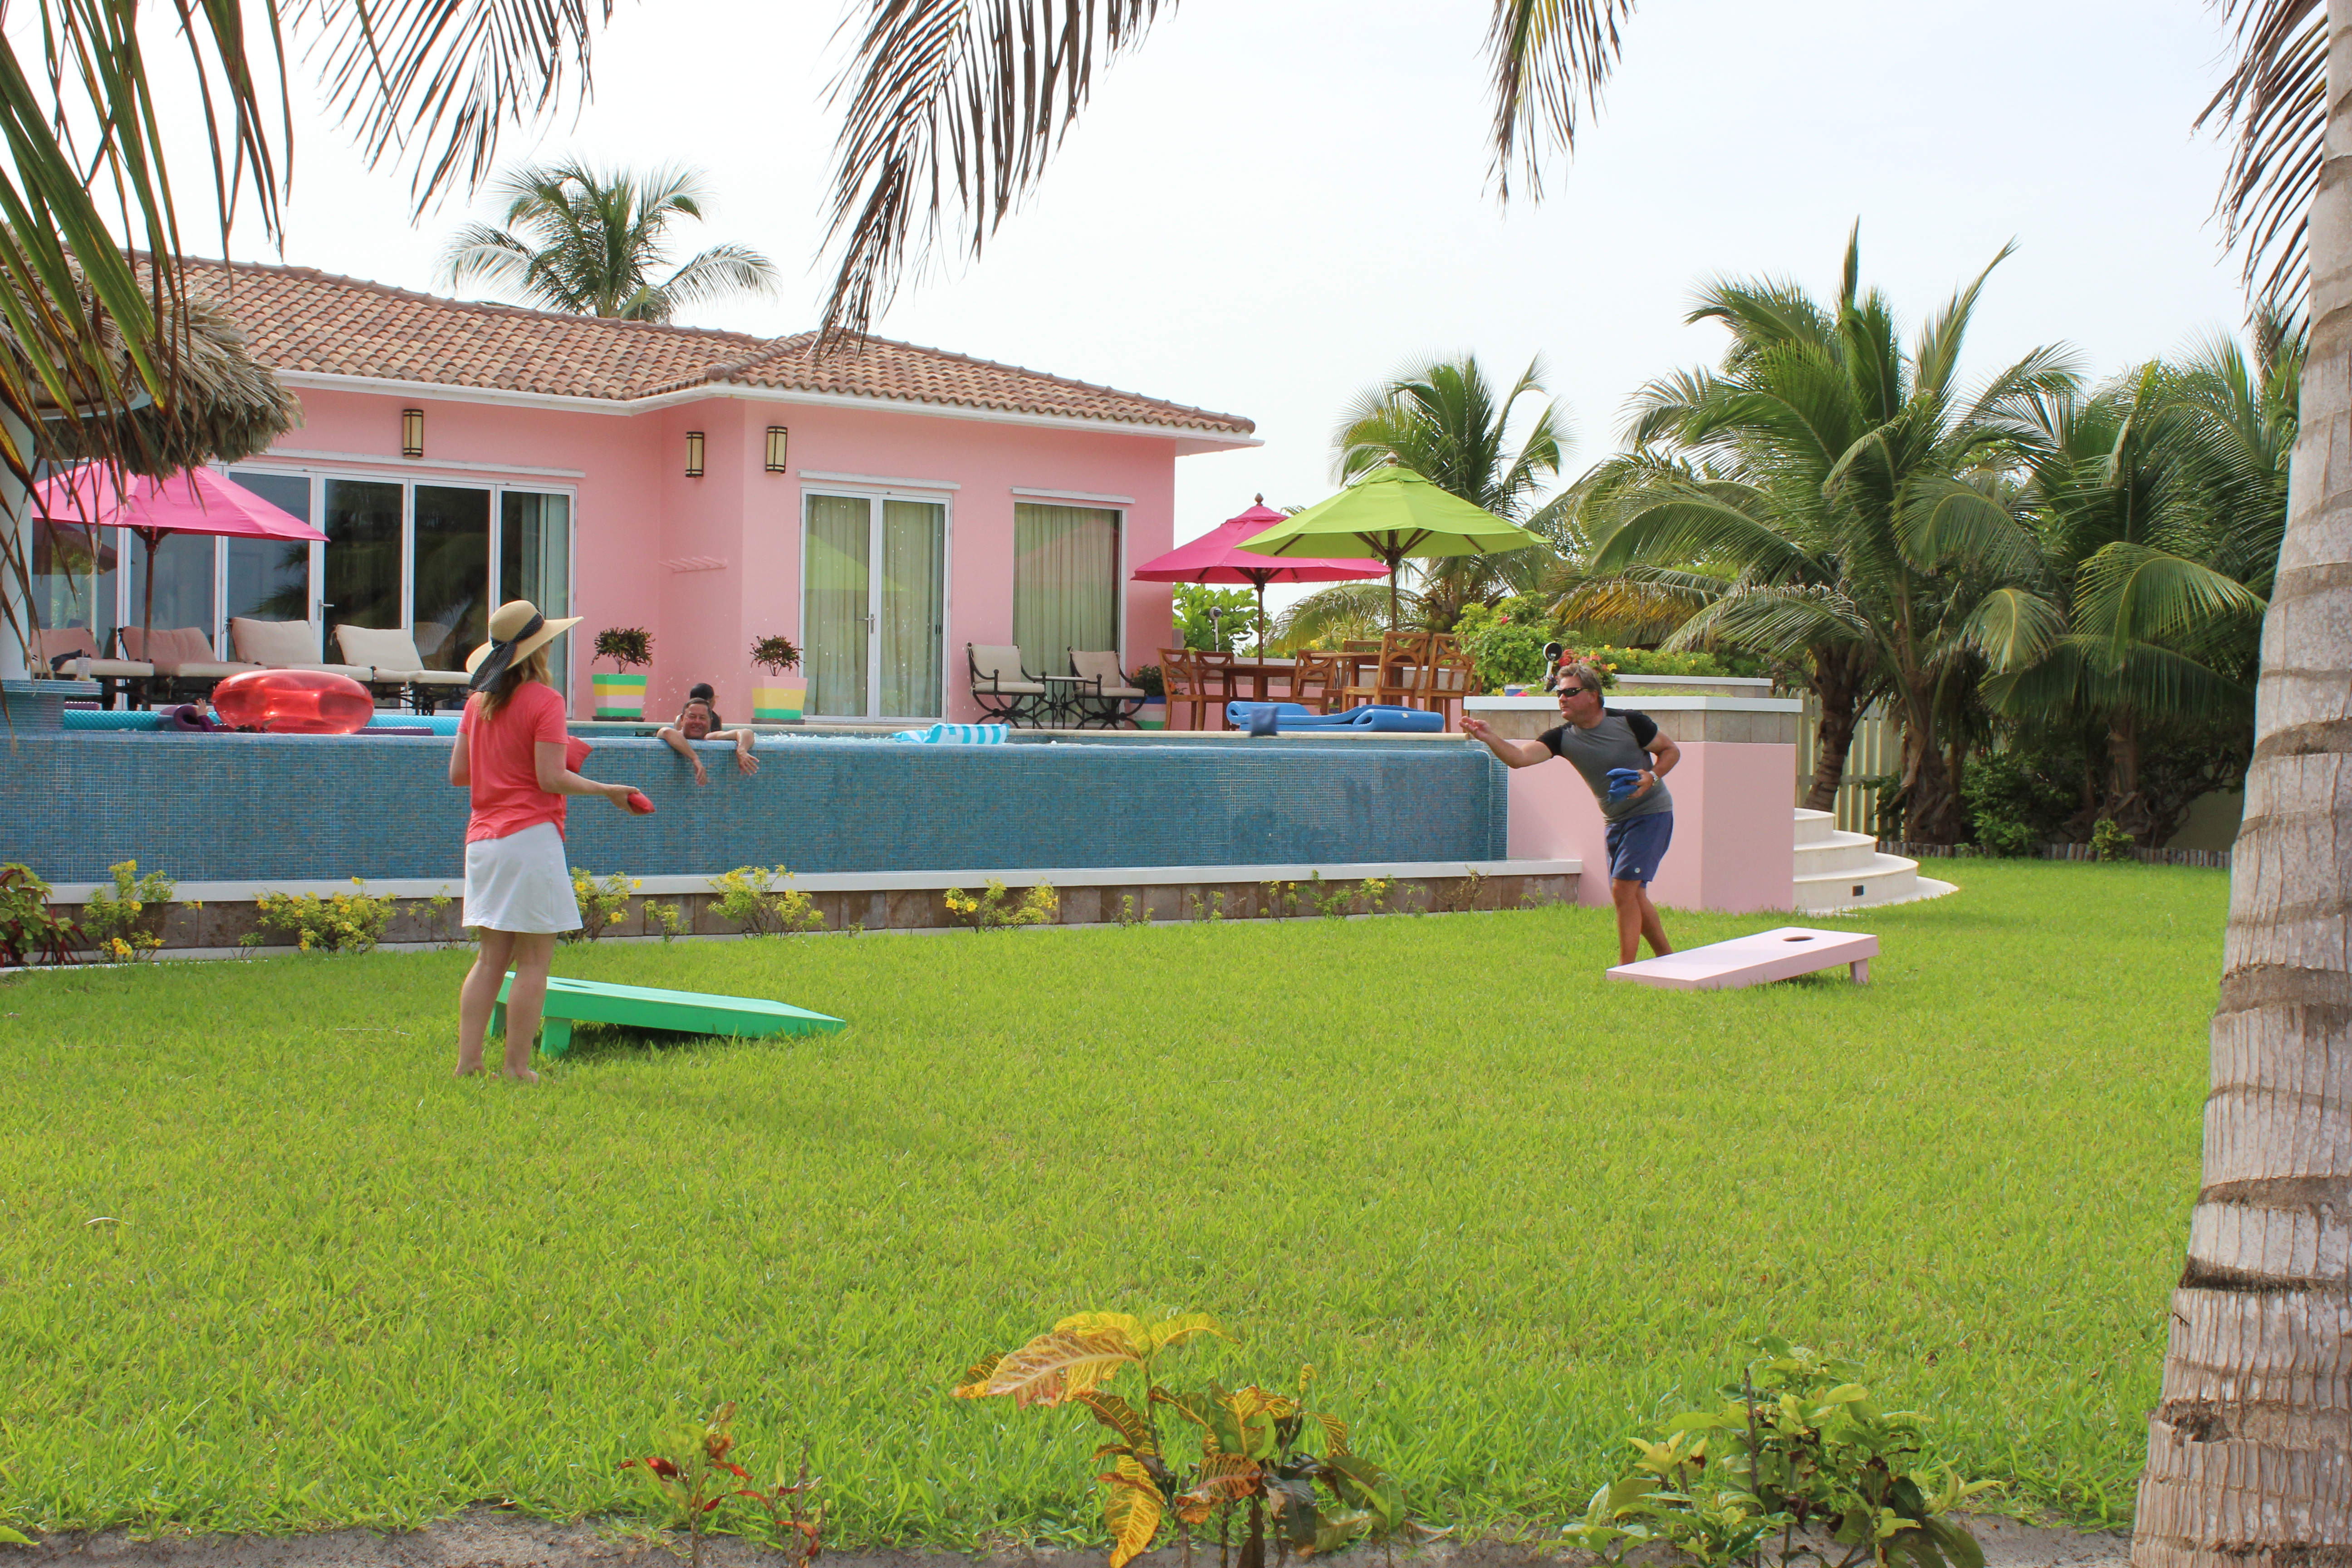 Canary Cove Villa Private Infinity Pool and Corn Hole on the Lawn